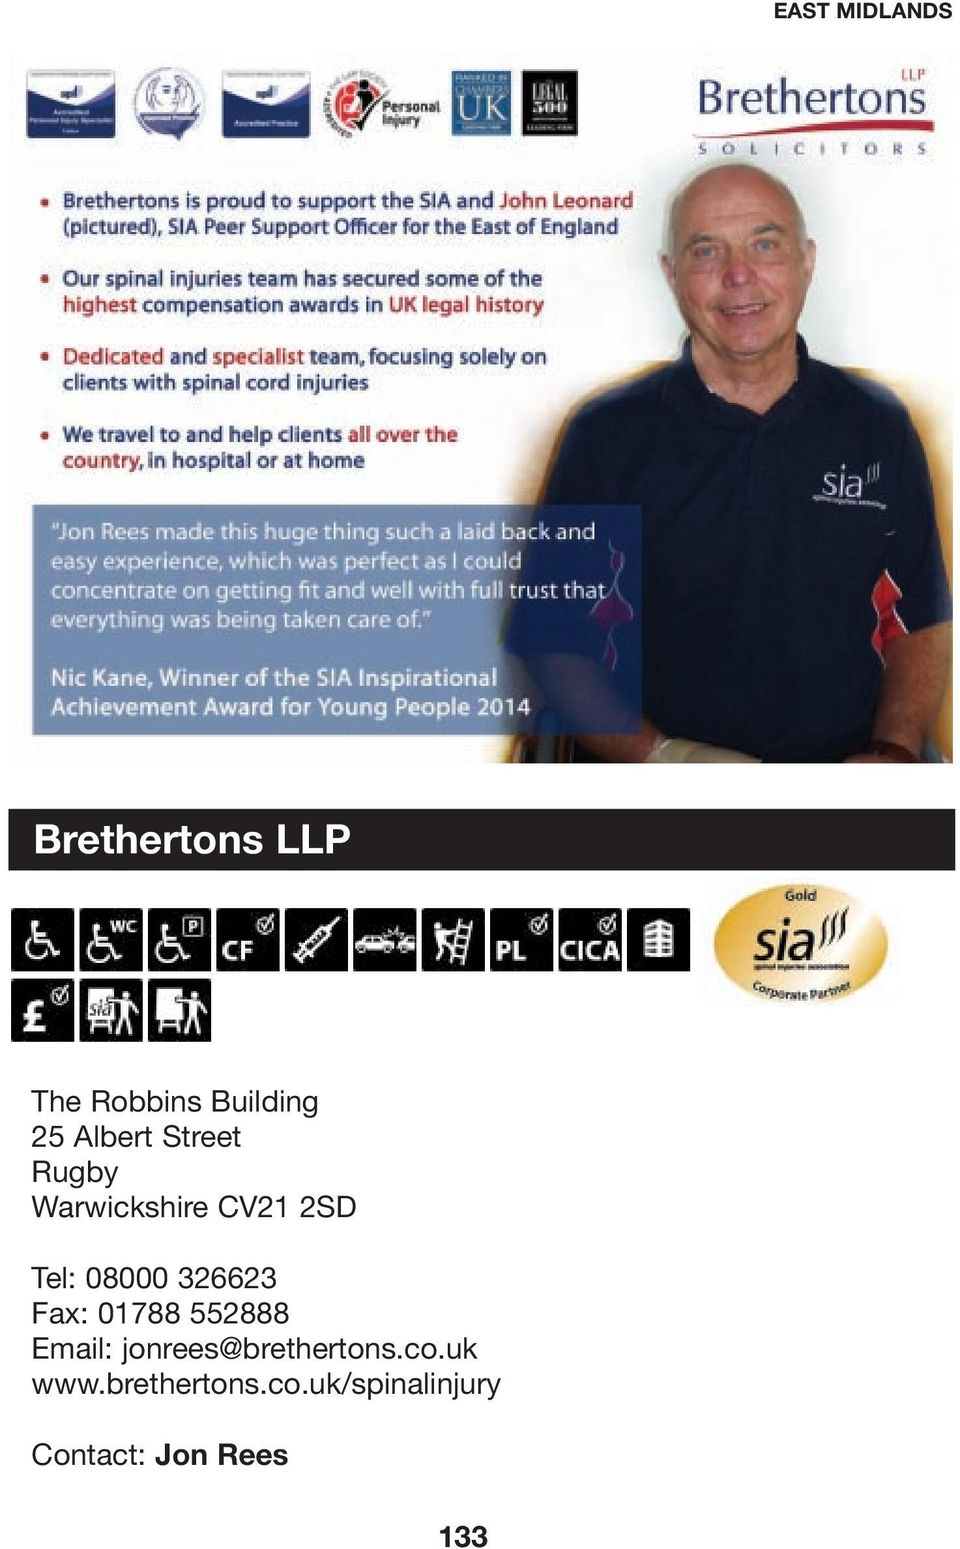 326623 Fax: 01788 552888 Email: jonrees@brethertons.